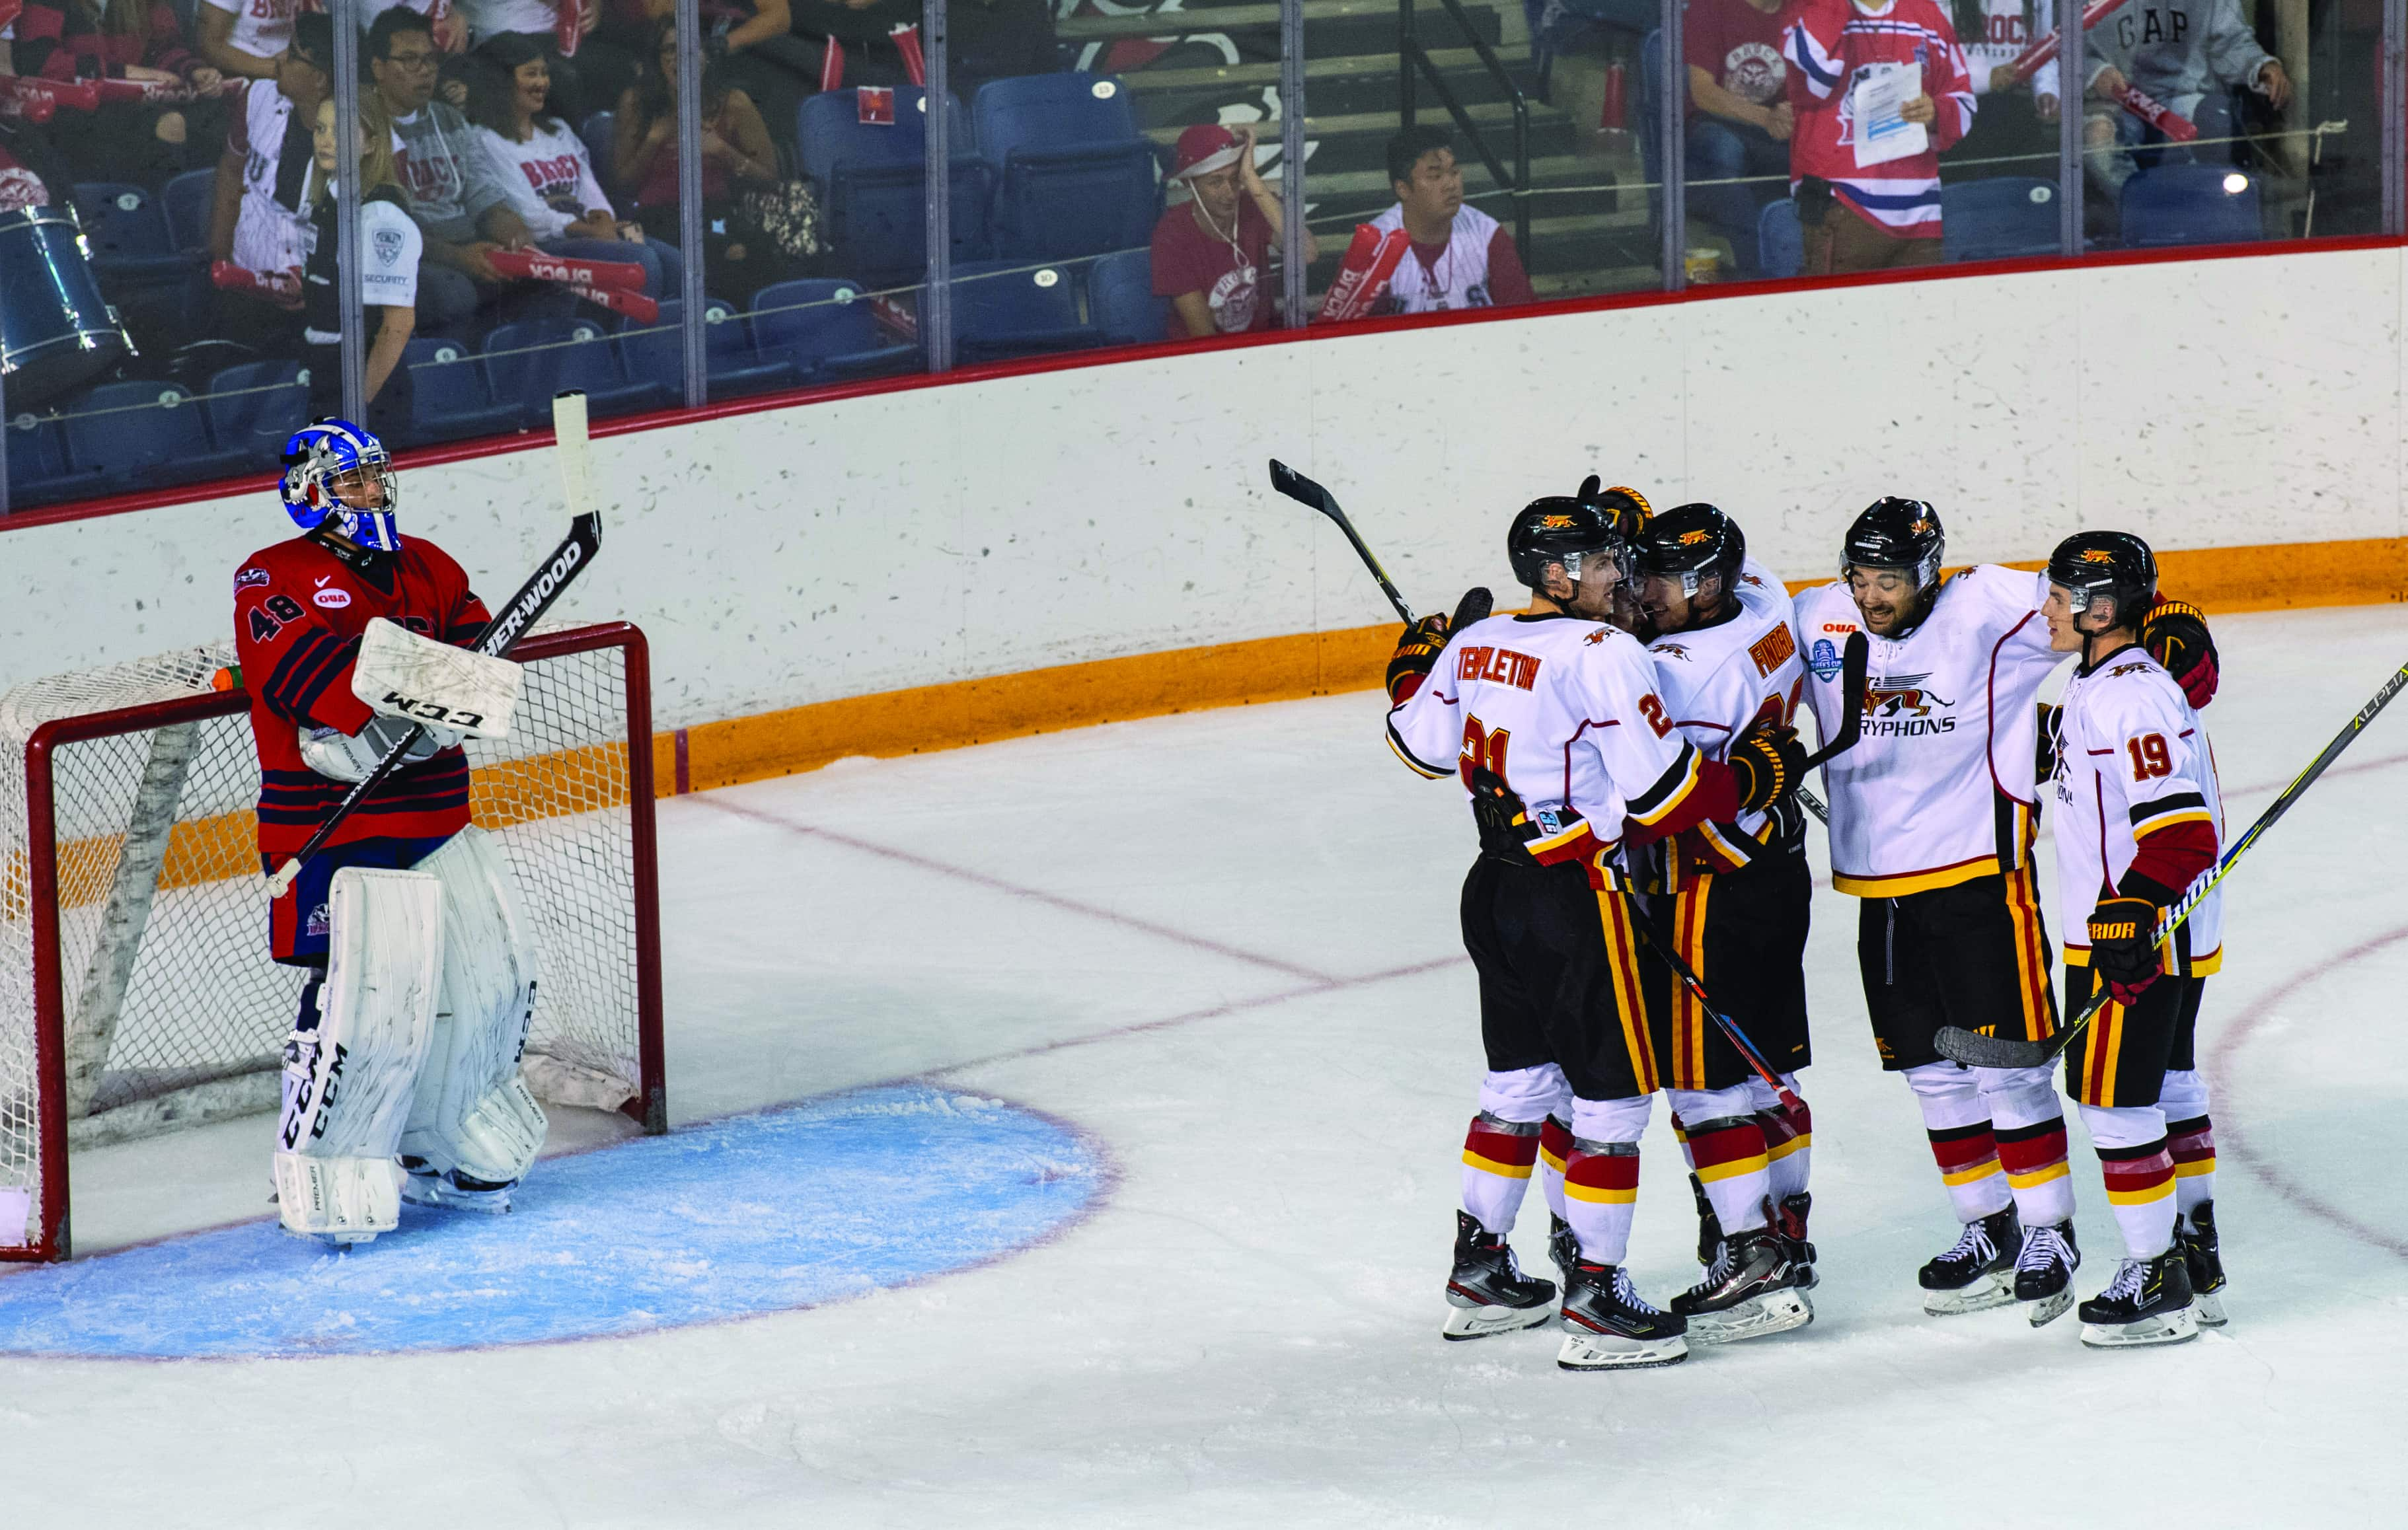 Badgers aim to regroup after loss in Steel Blade Classic